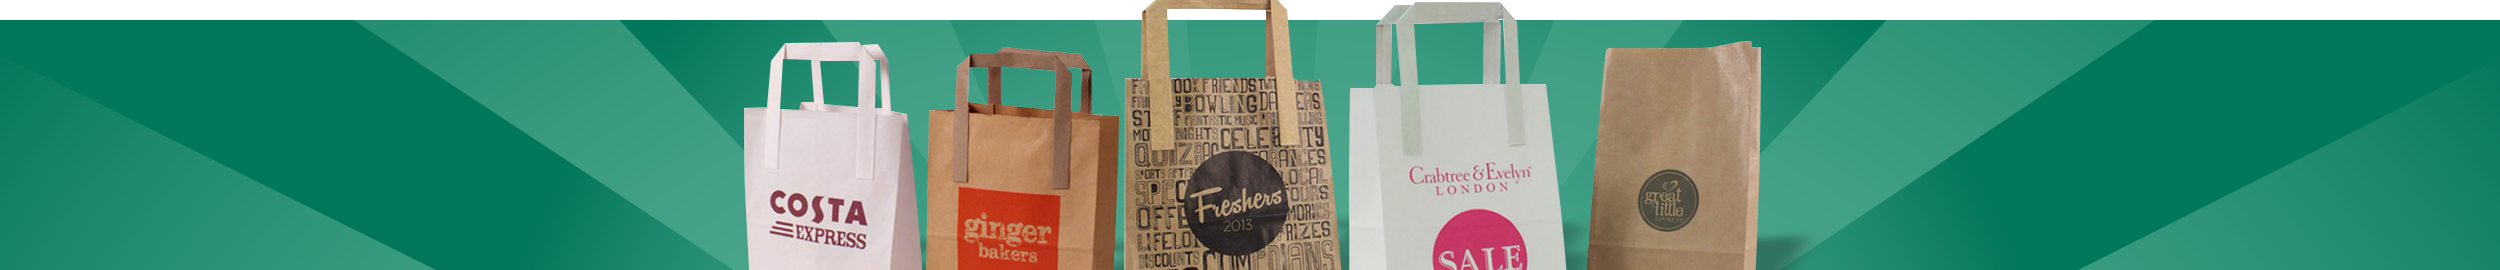 Paper Bags Banner | Promotional Products | Minuteman Press Norwich